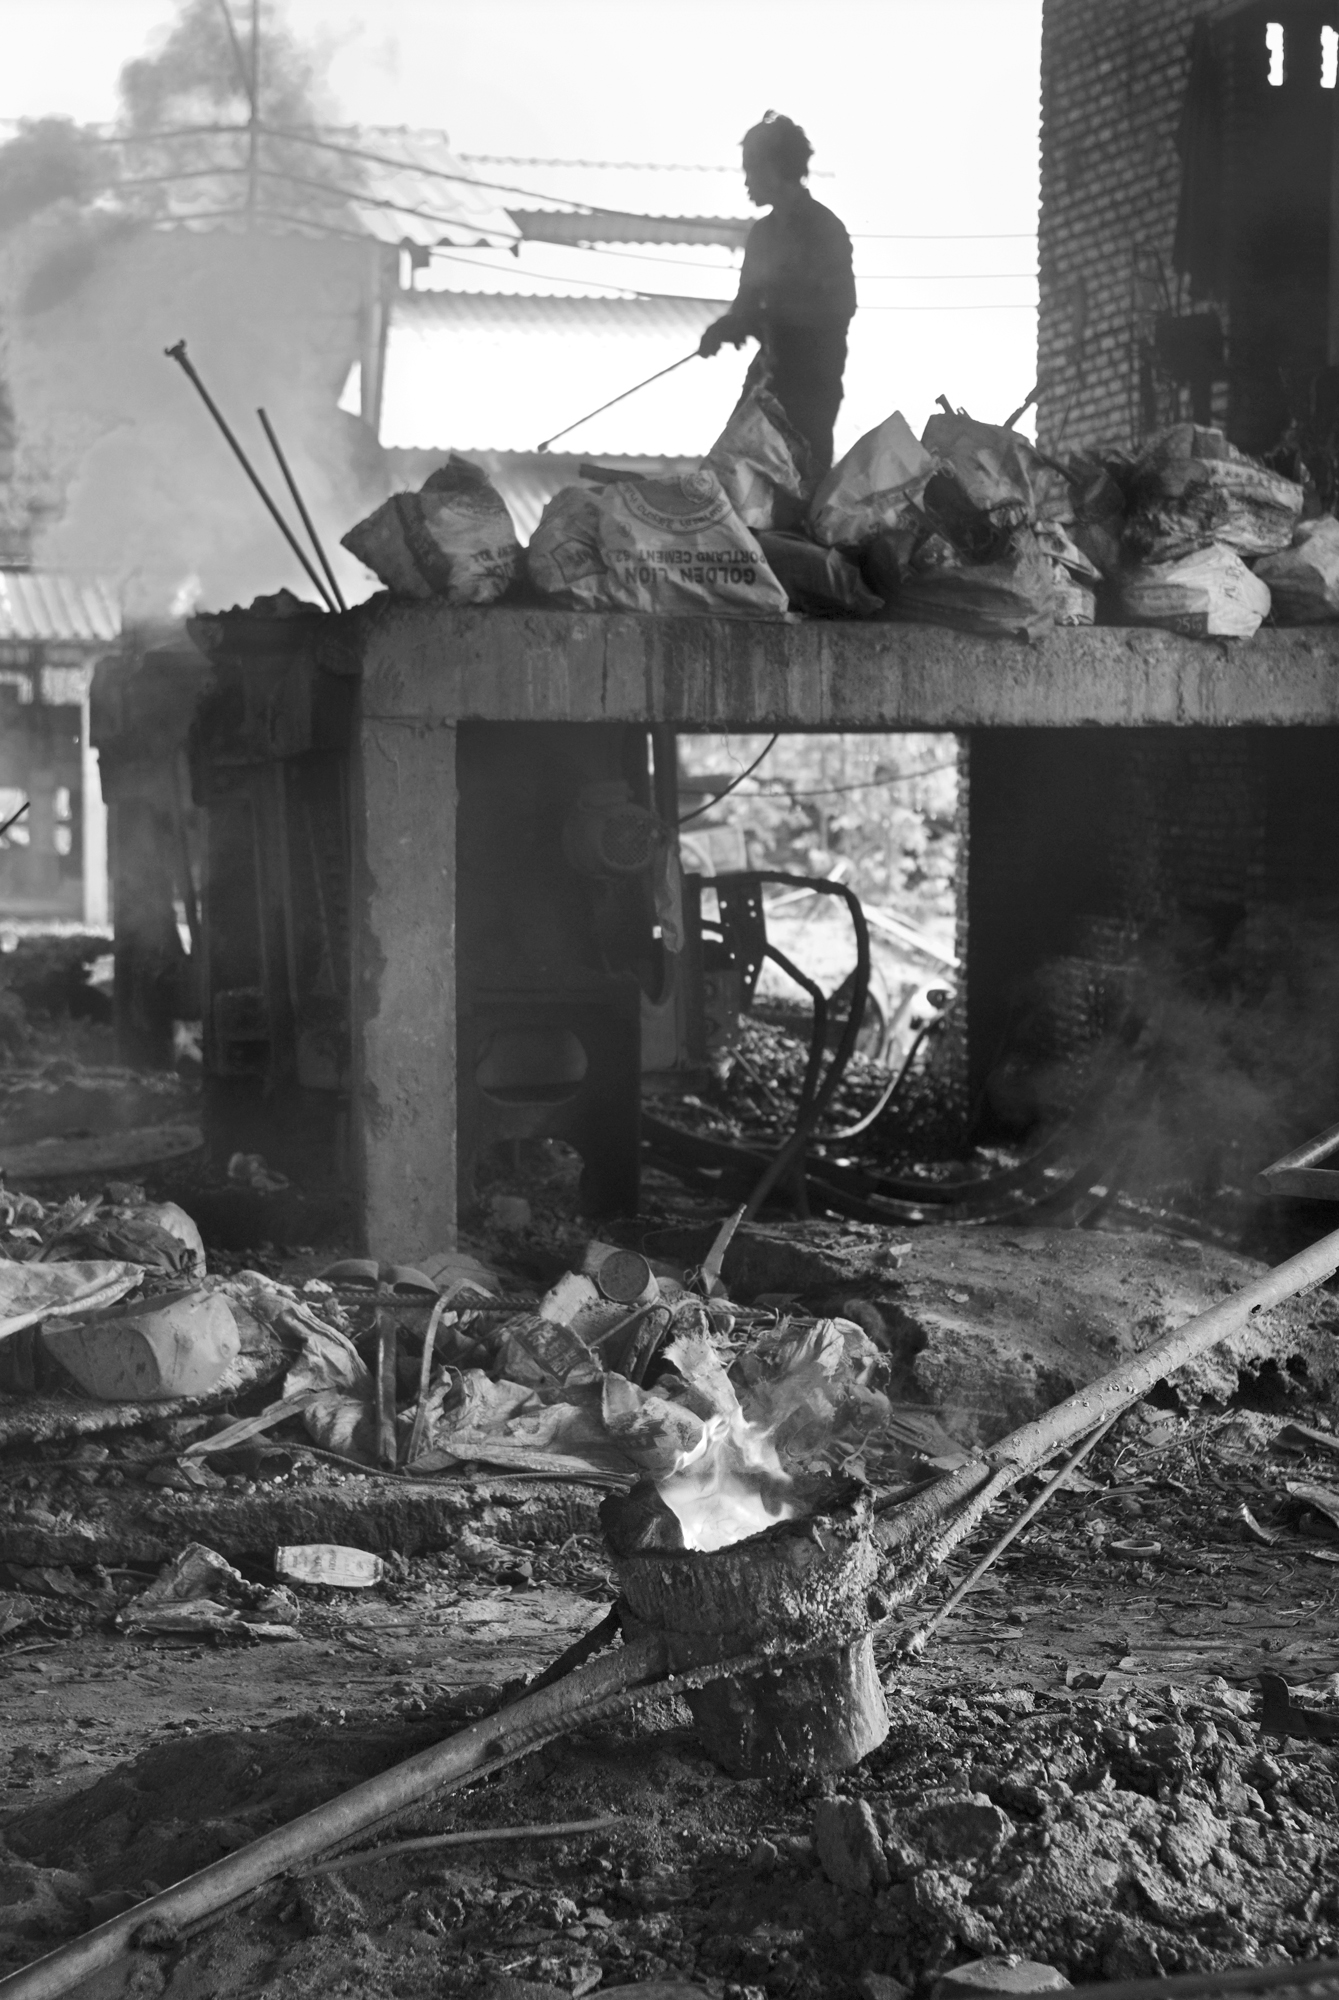 A man smelts scrap metal, much of it war and bomb scrap, in a foundry near Paksan, Laos. Several foundries buy bomb scrap from the Lao countryside which they melt into new rebar for making buildings.